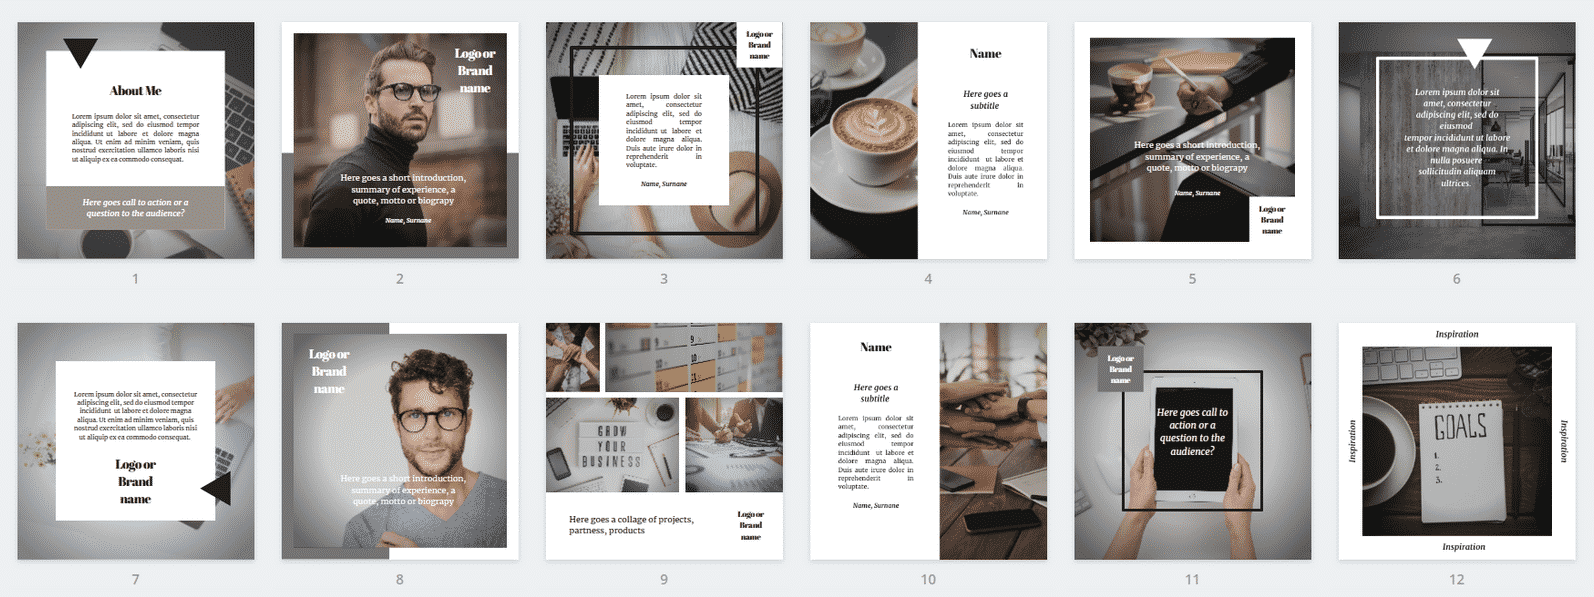 Benefits of Using these Canva Social Media Templates